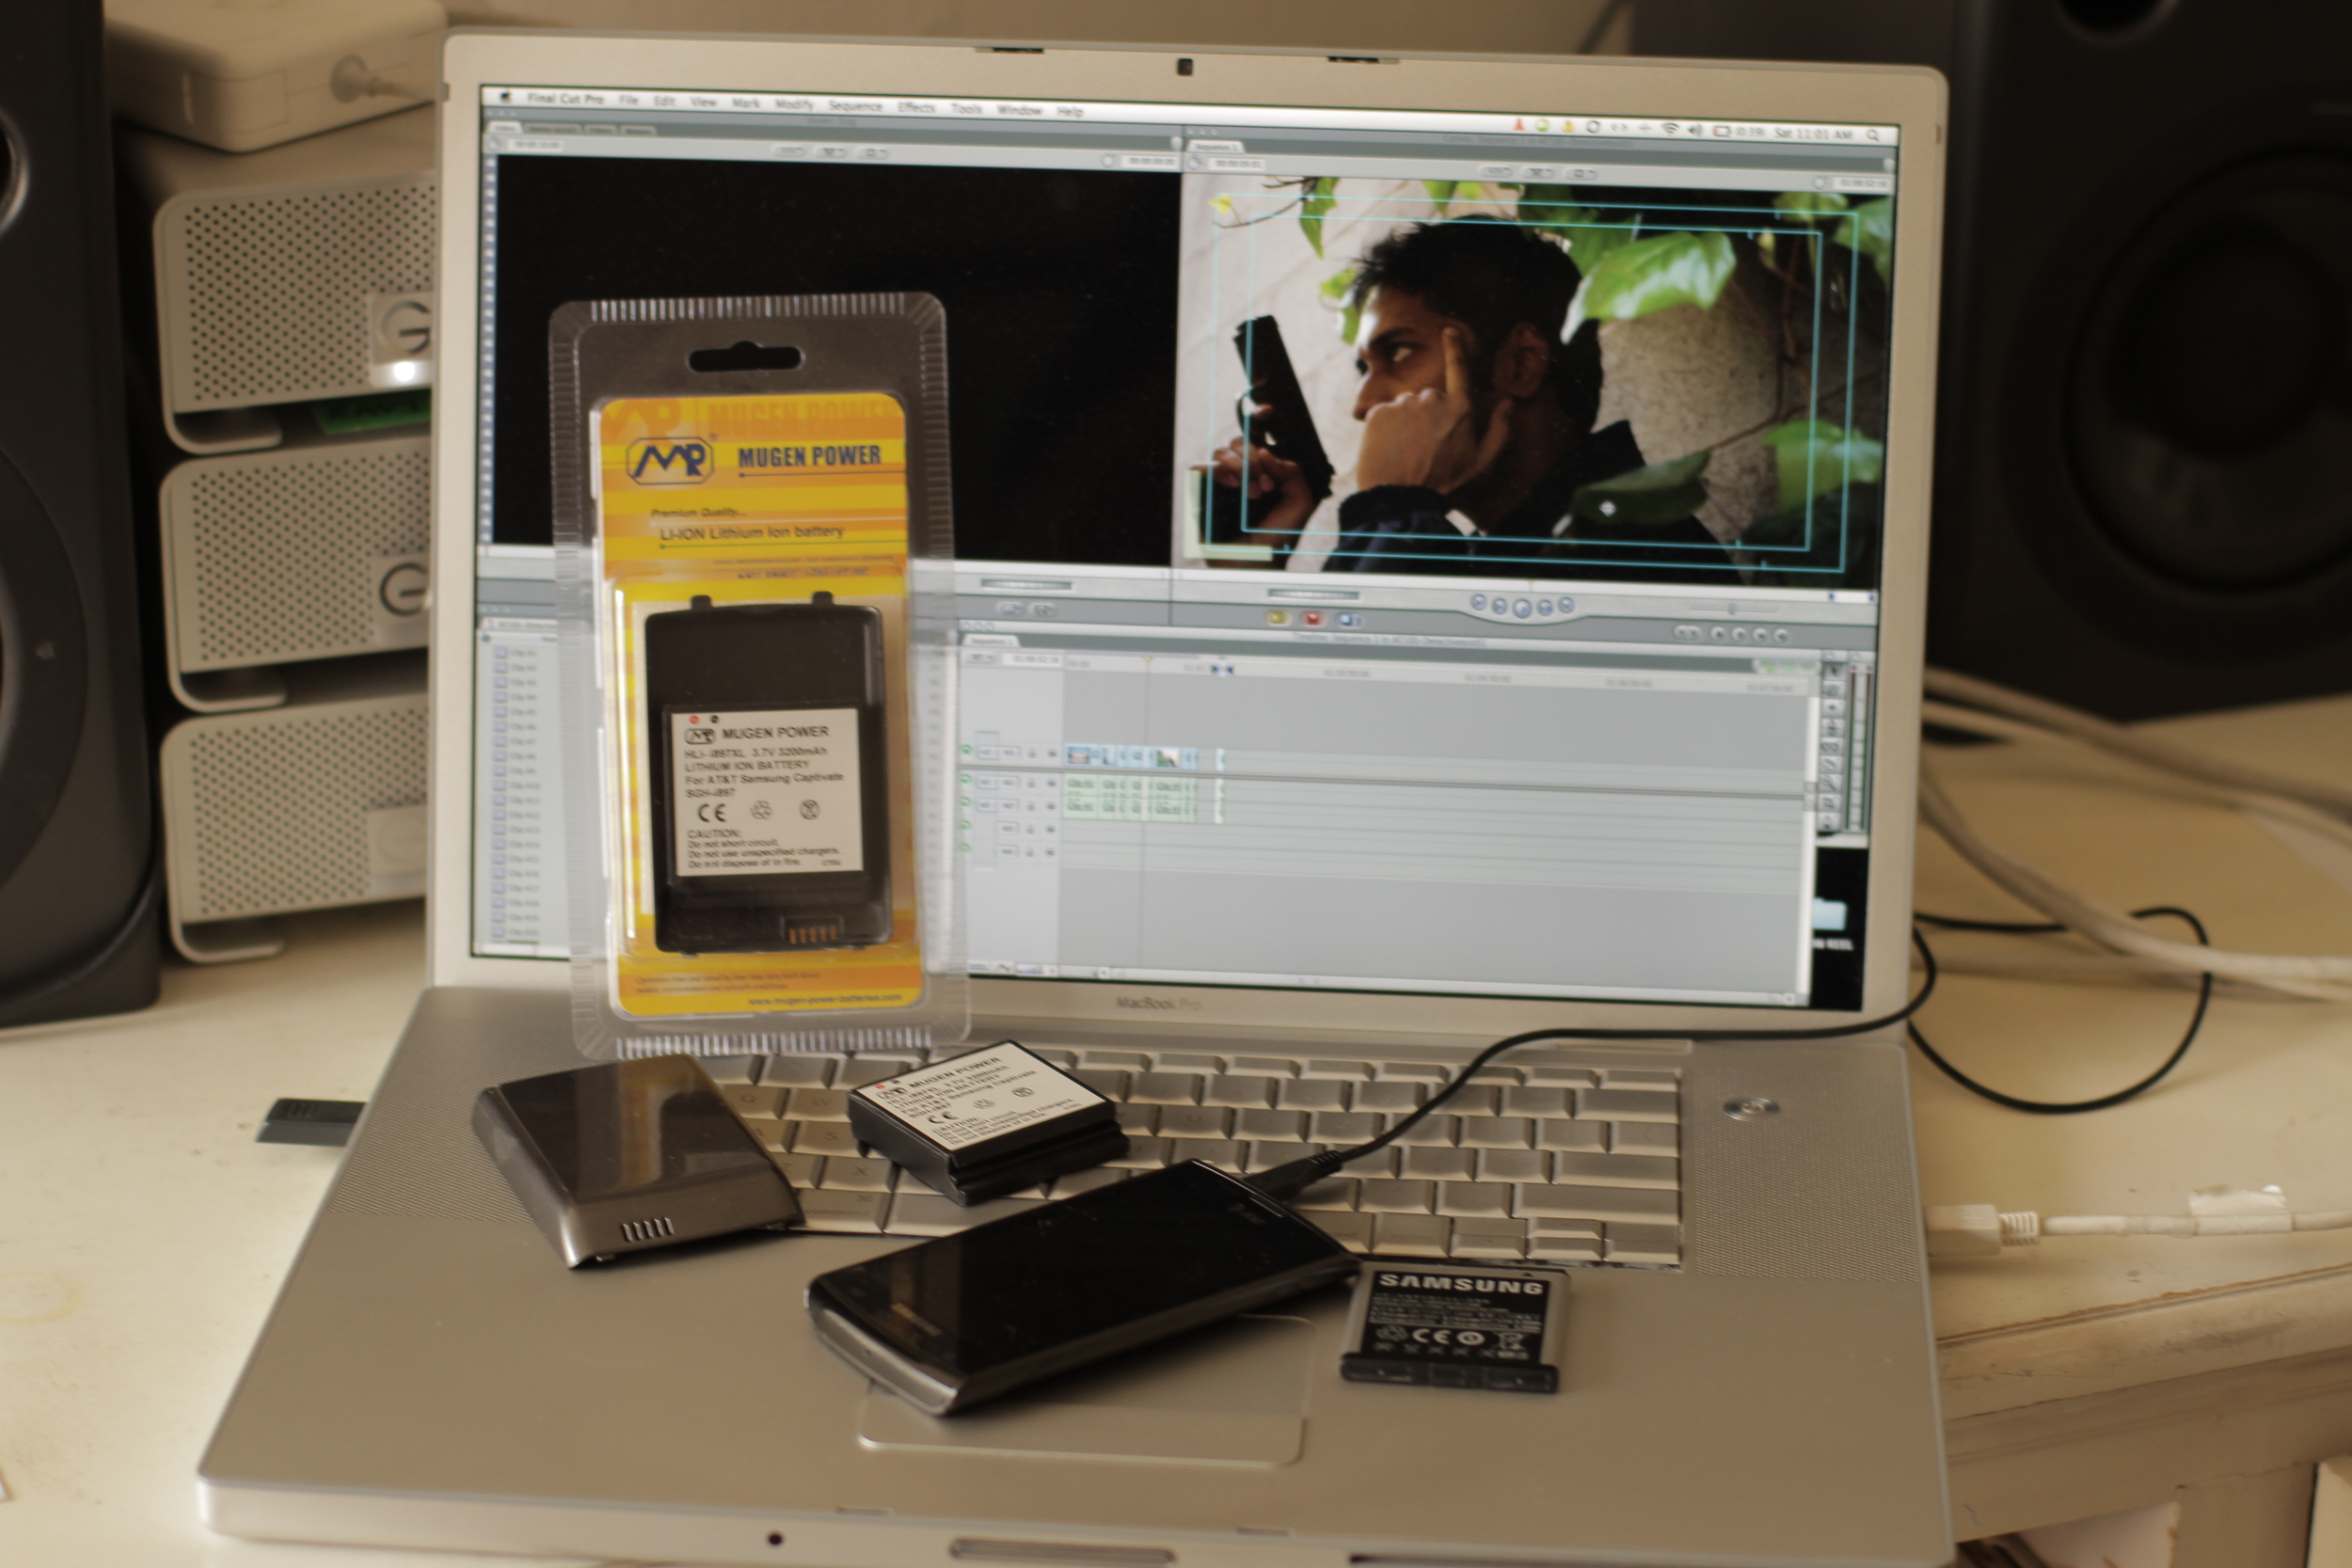 Making a Short Film on an Android Phone with help from Mugen Power